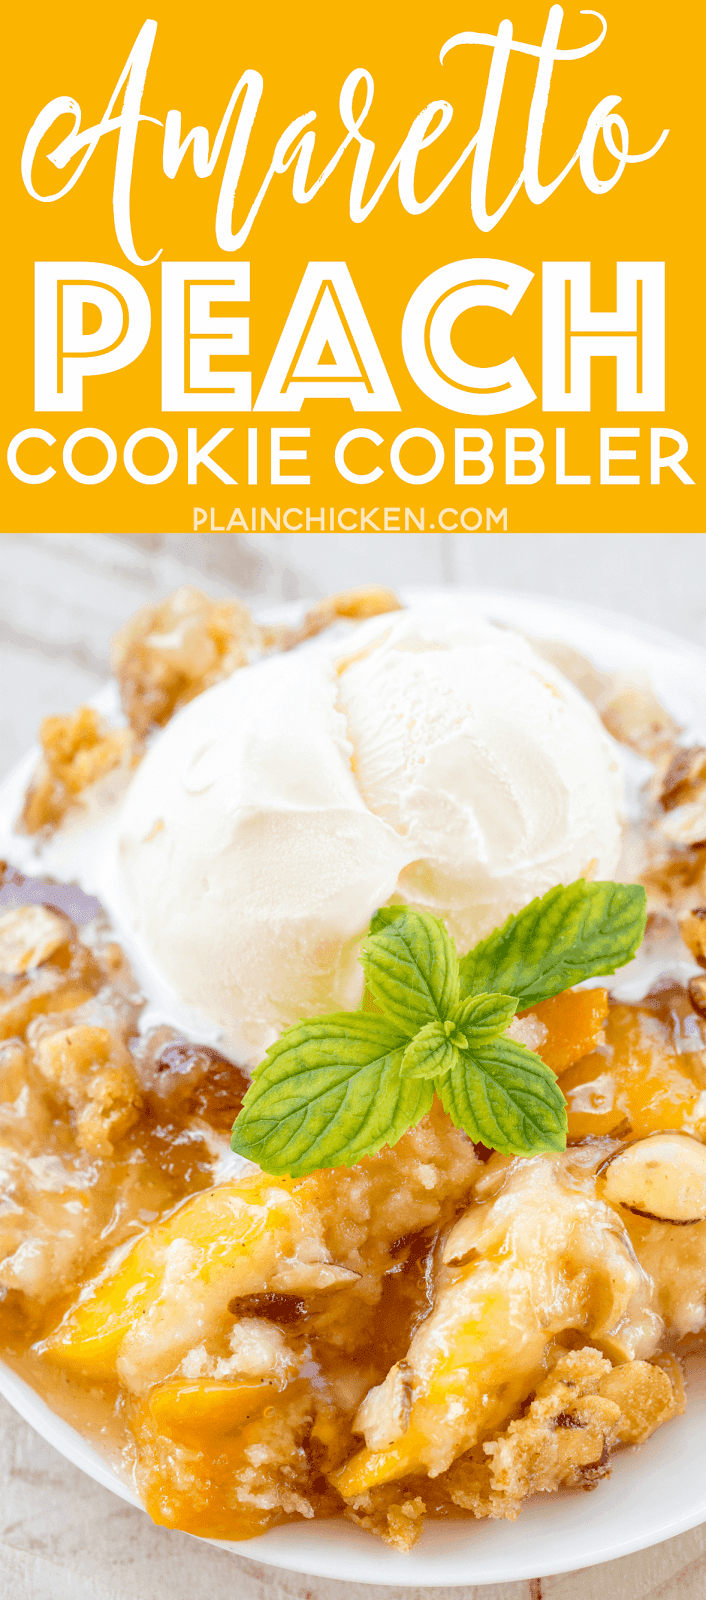 Amaretto Peach Cookie Cobbler - heaven in a pan! CRAZY good!!! Super easy to make and a real crowd pleaser. Peach pie filling, peaches, amaretto, sugar cookie mix, sliced almonds and butter. Ready to eat in 30 minutes! There are never any leftovers when I take this to a potluck. Such a wonderful and easy dessert recipe!